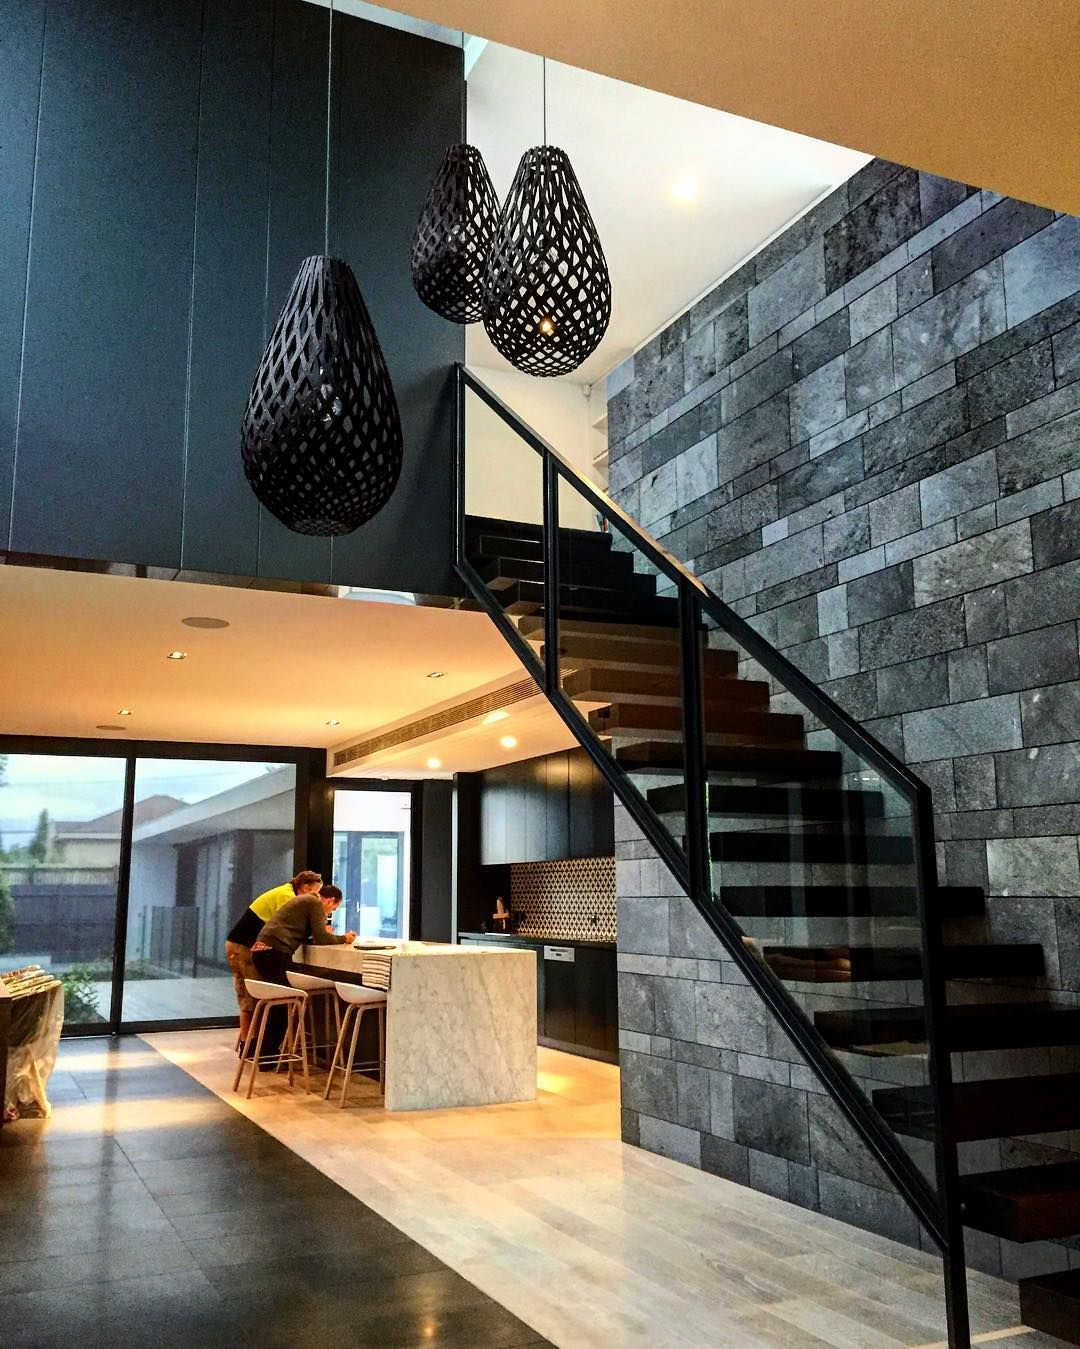 Basement Stairway Lighting Ideas: 15+ Stairway Lighting Ideas For Modern And Contemporary